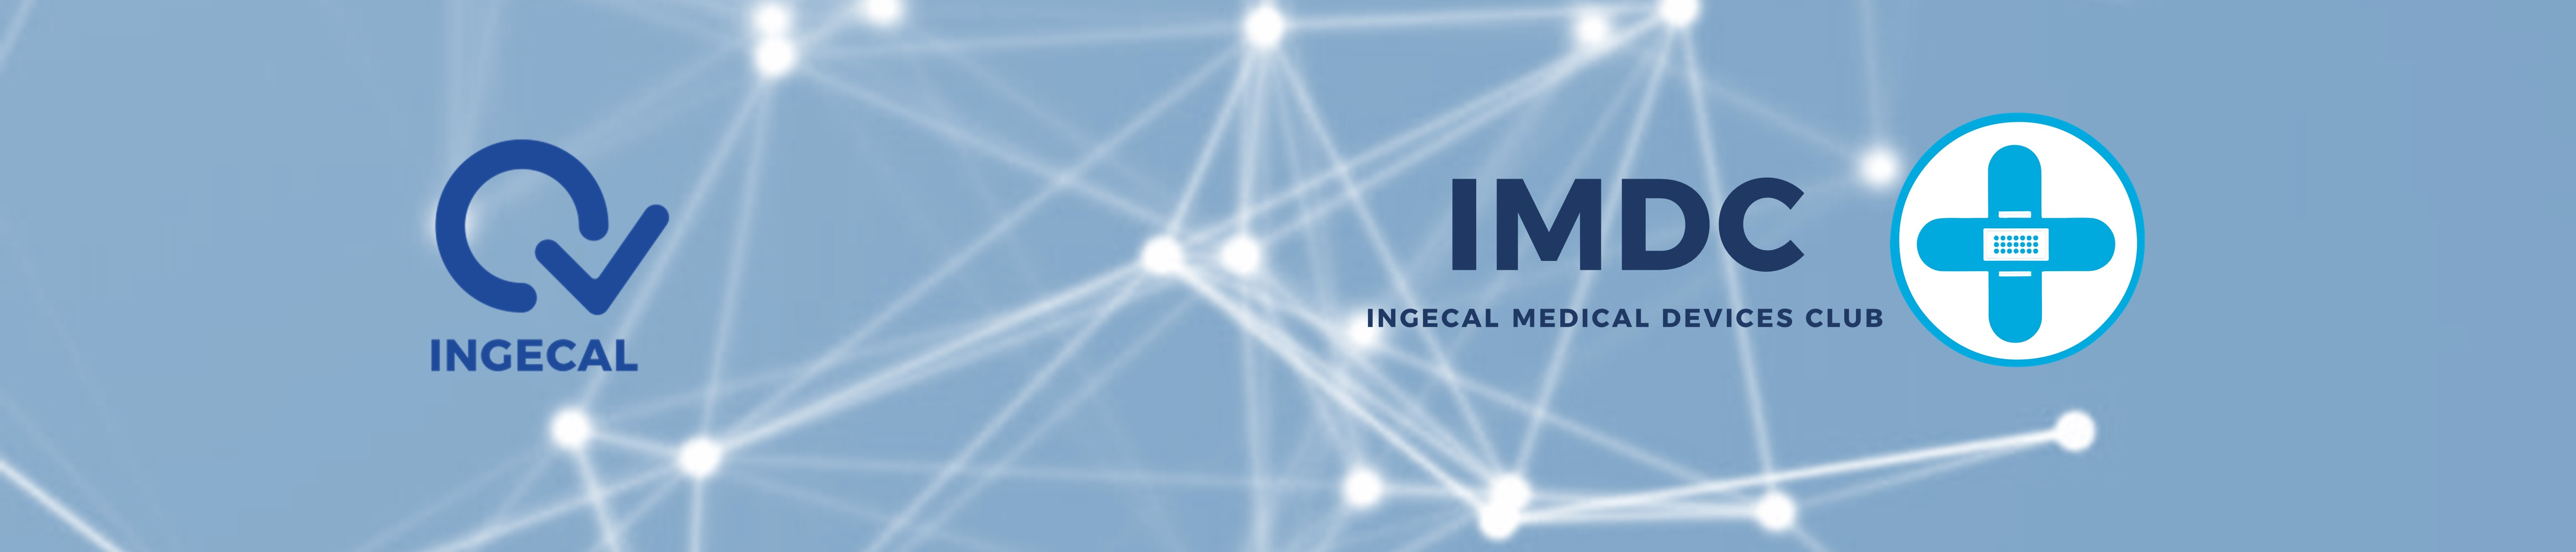 Ingecal Medical Device Club - IMDC